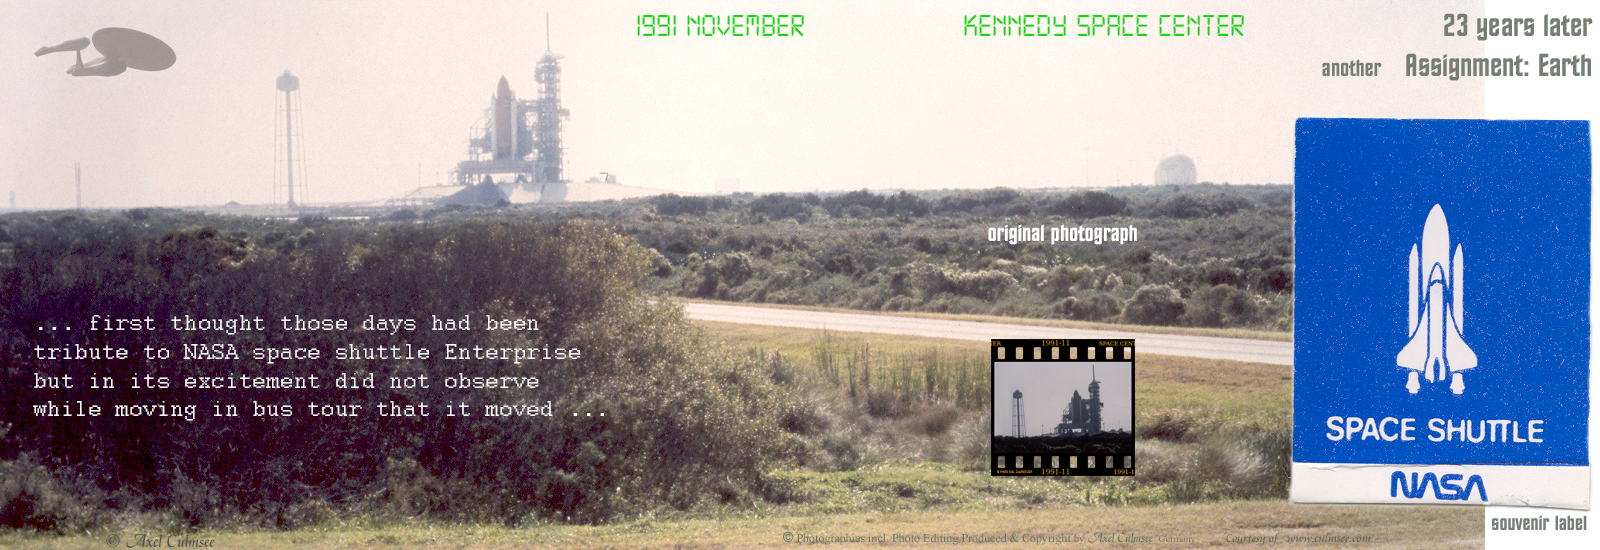 NASA Kennedy Space Center slides comparison November 1991